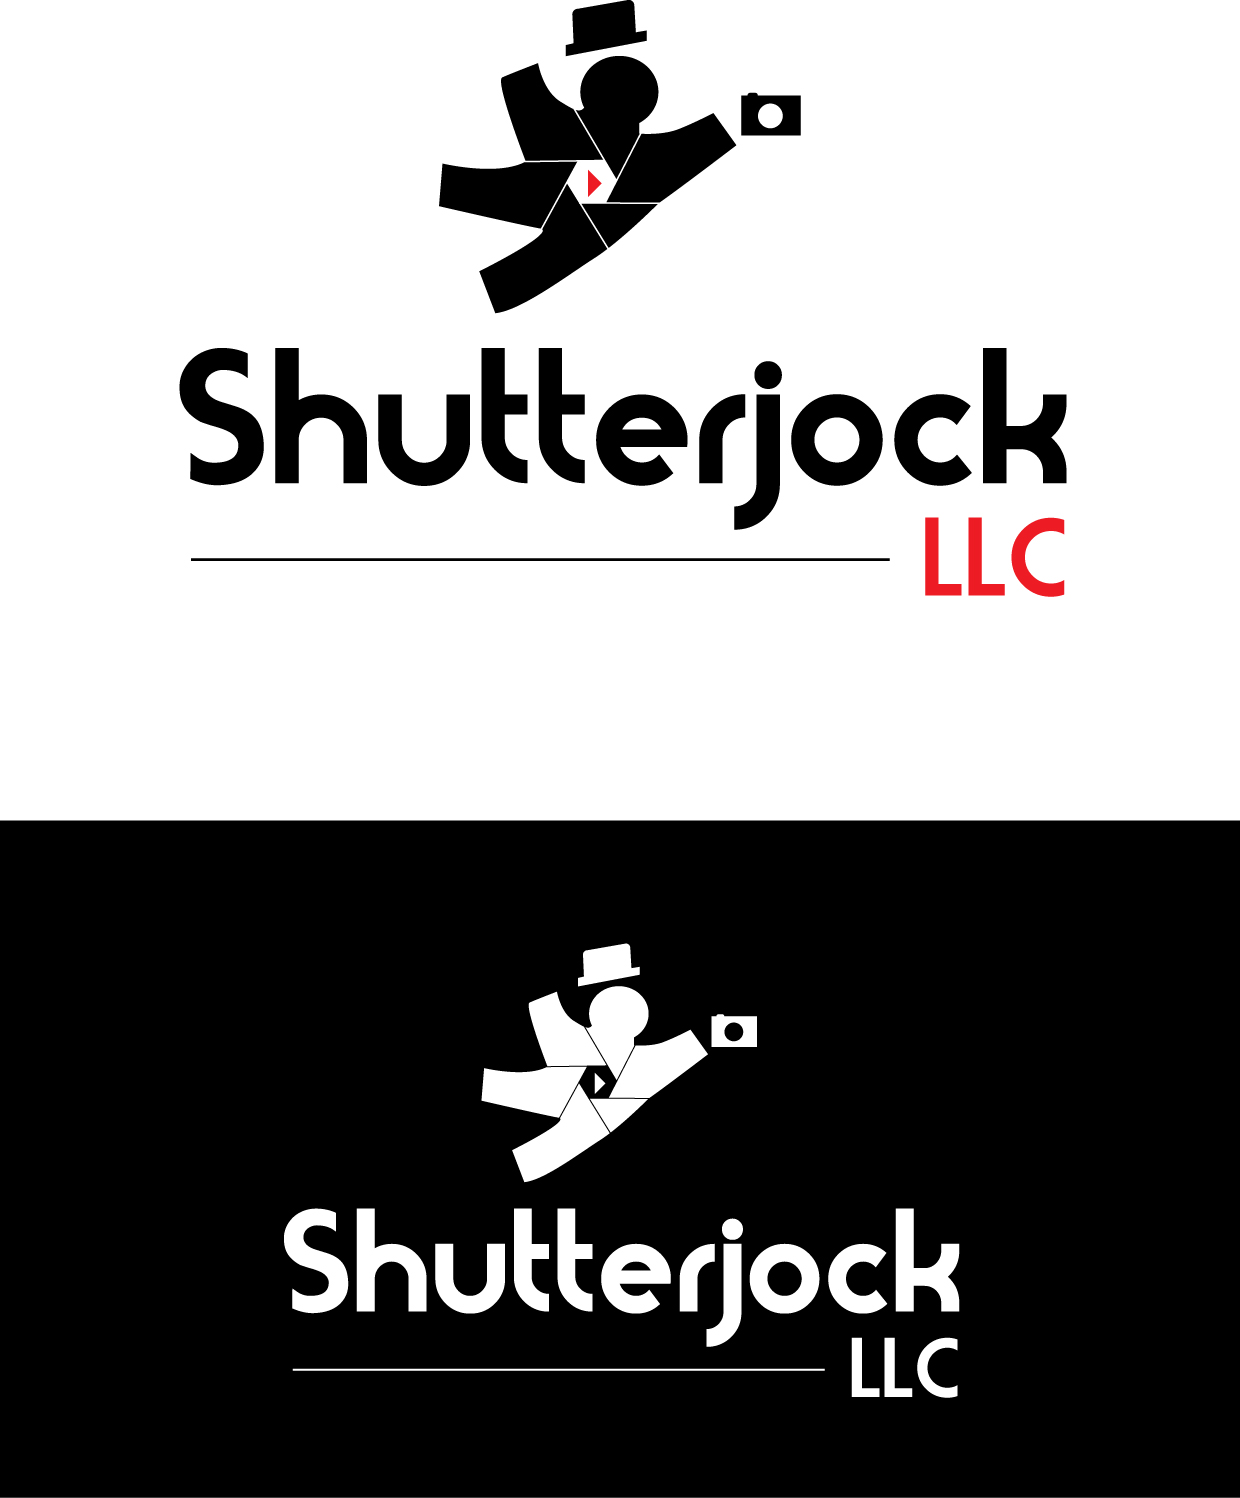 Logo Design by mediaproductionart - Entry No. 60 in the Logo Design Contest Unique Logo Design Wanted for Shutterjock LLC.